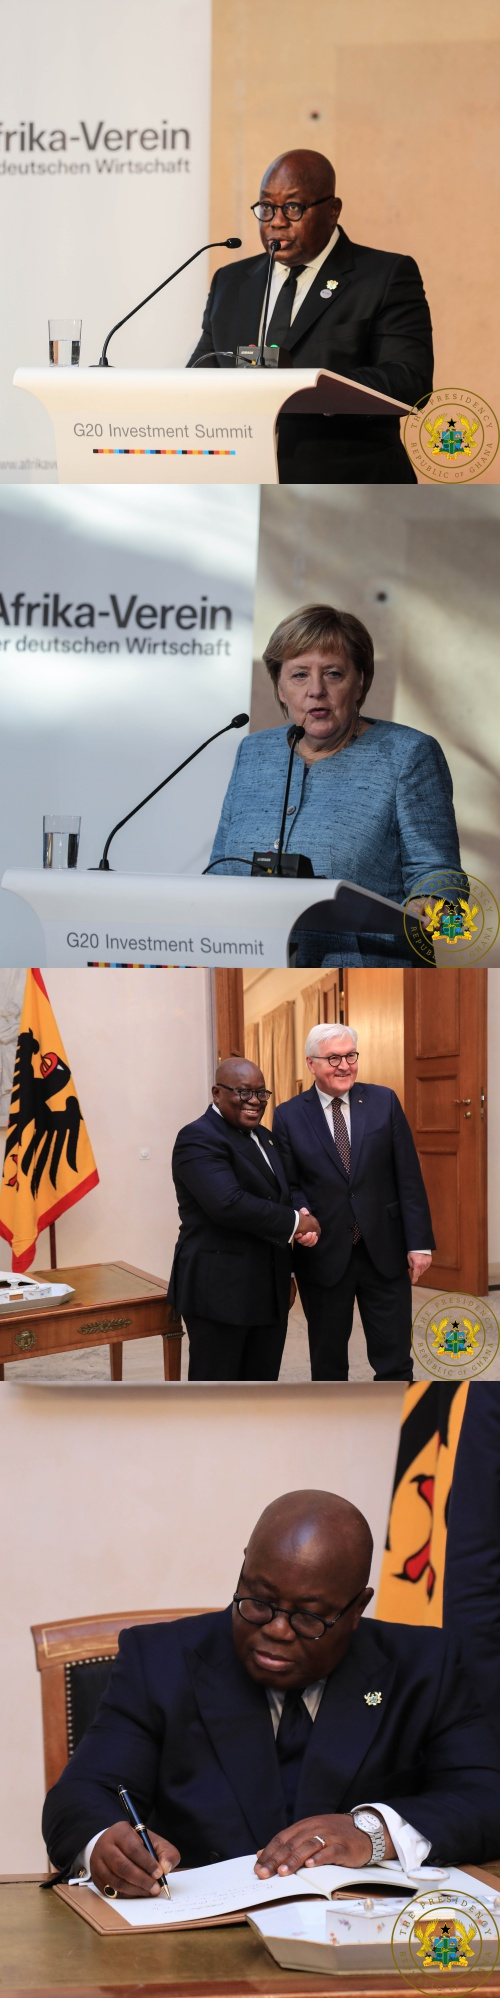 Siemens AG To Establish Presence In Ghana Soon — President Akufo-Addo - President Akufo Addo speaking at the Compact with Africa Conference down - Siemens AG To Establish Presence In Ghana Soon — President Akufo-Addo